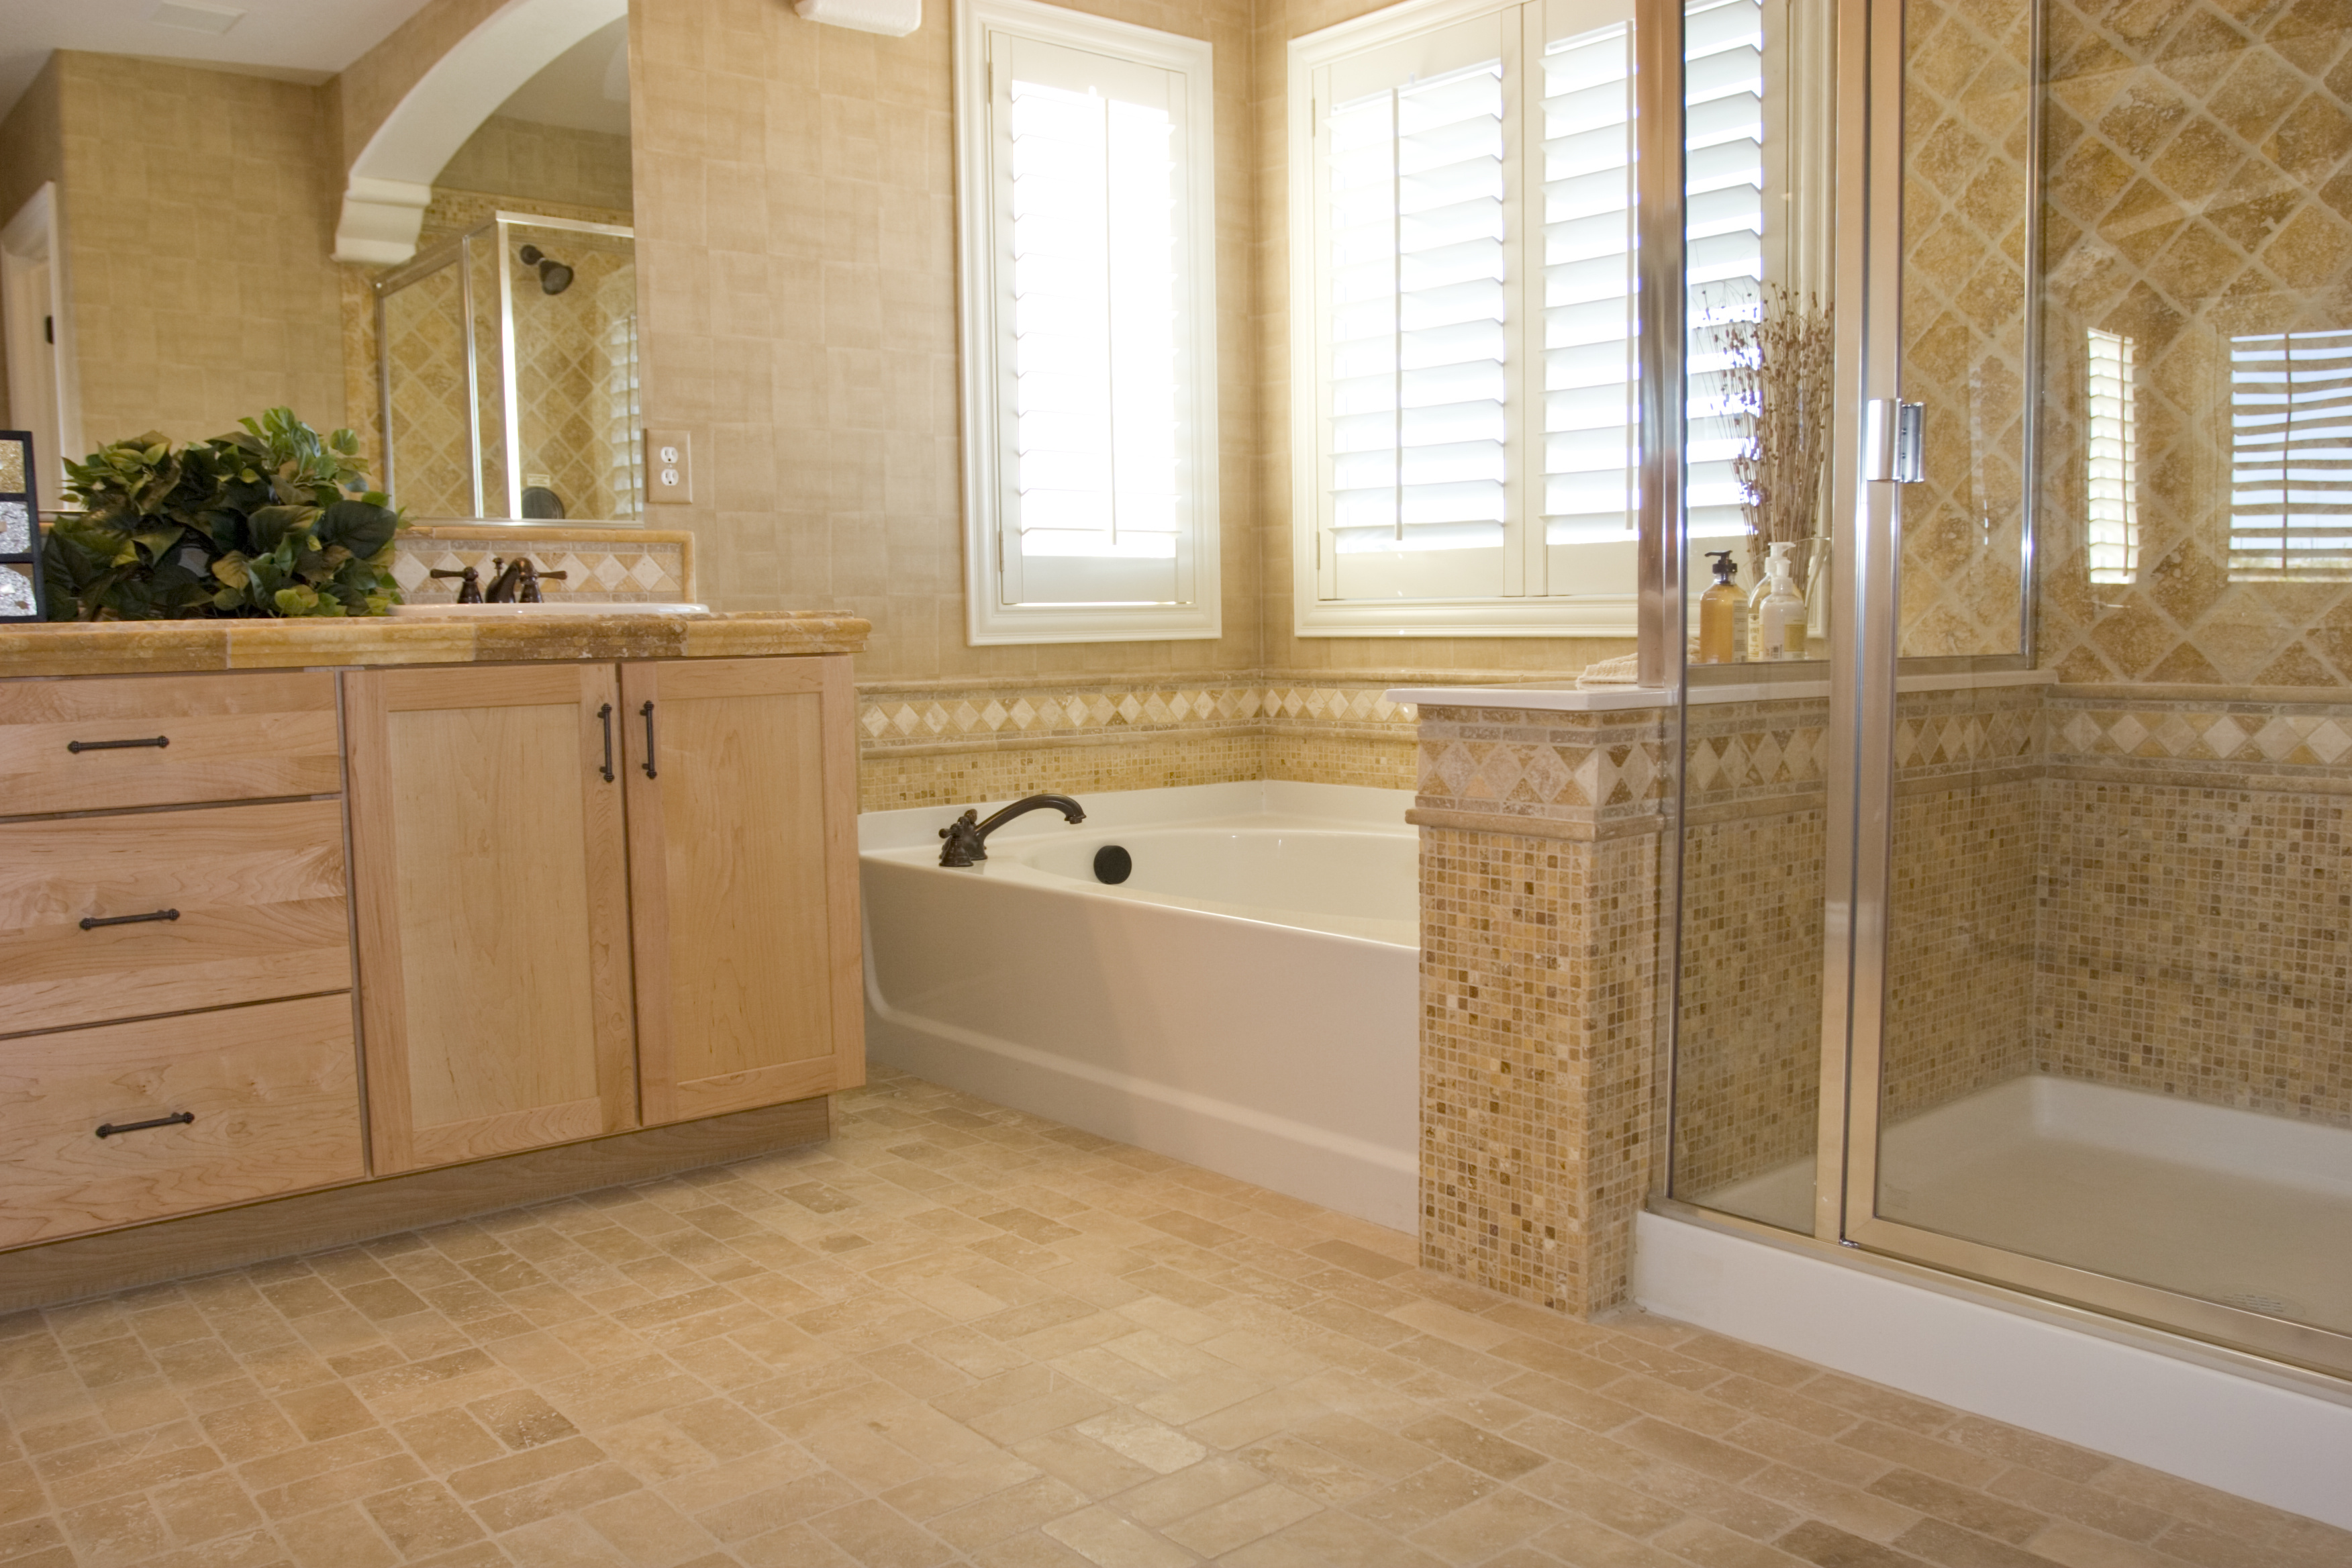 St Louis Bathroom Remodeling Fascinating Upscale Bathroom Remodel  St Louis Bathroom Remodeling Experts Decorating Design